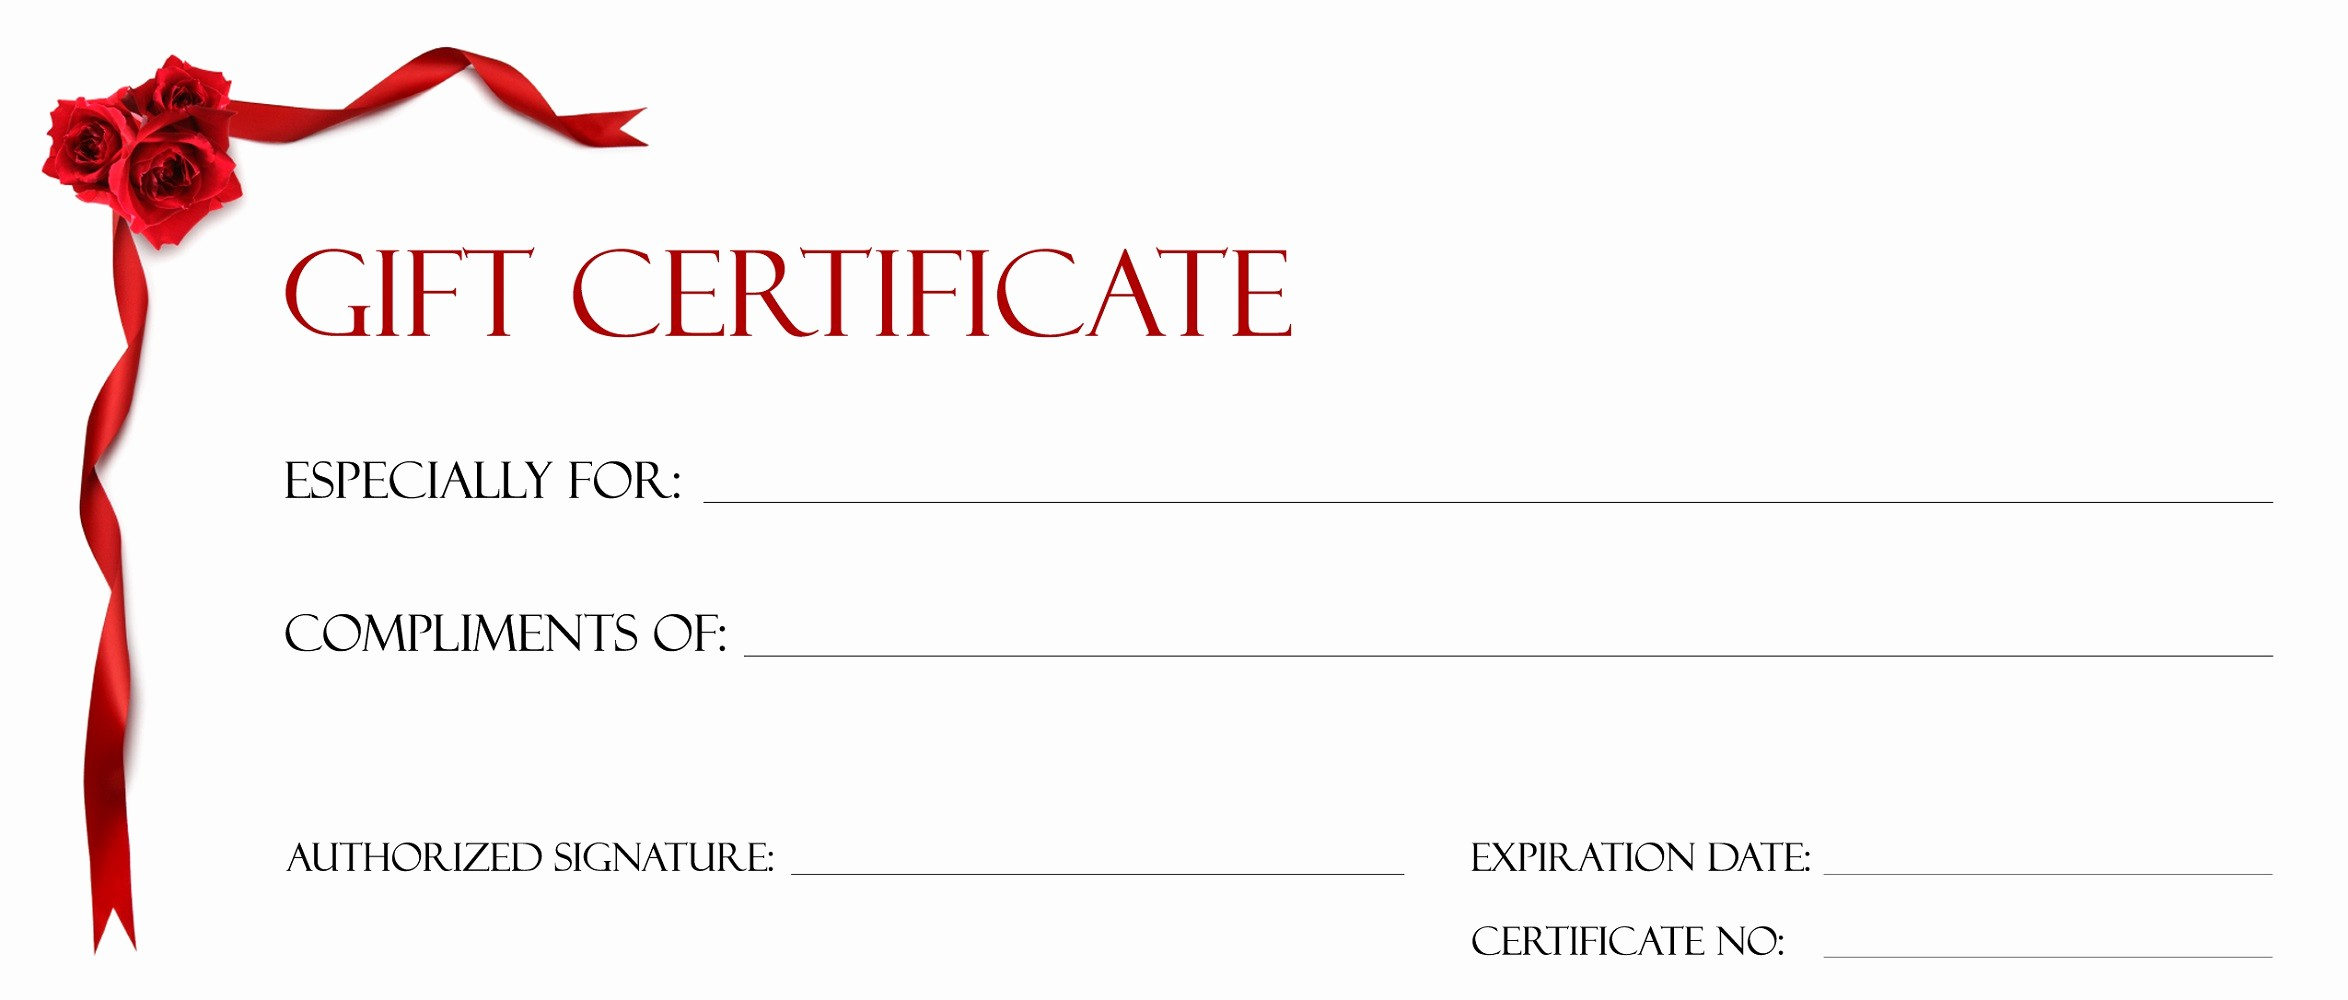 Making Gift Certificates Online Free Beautiful Gift Certificate Templates to Print